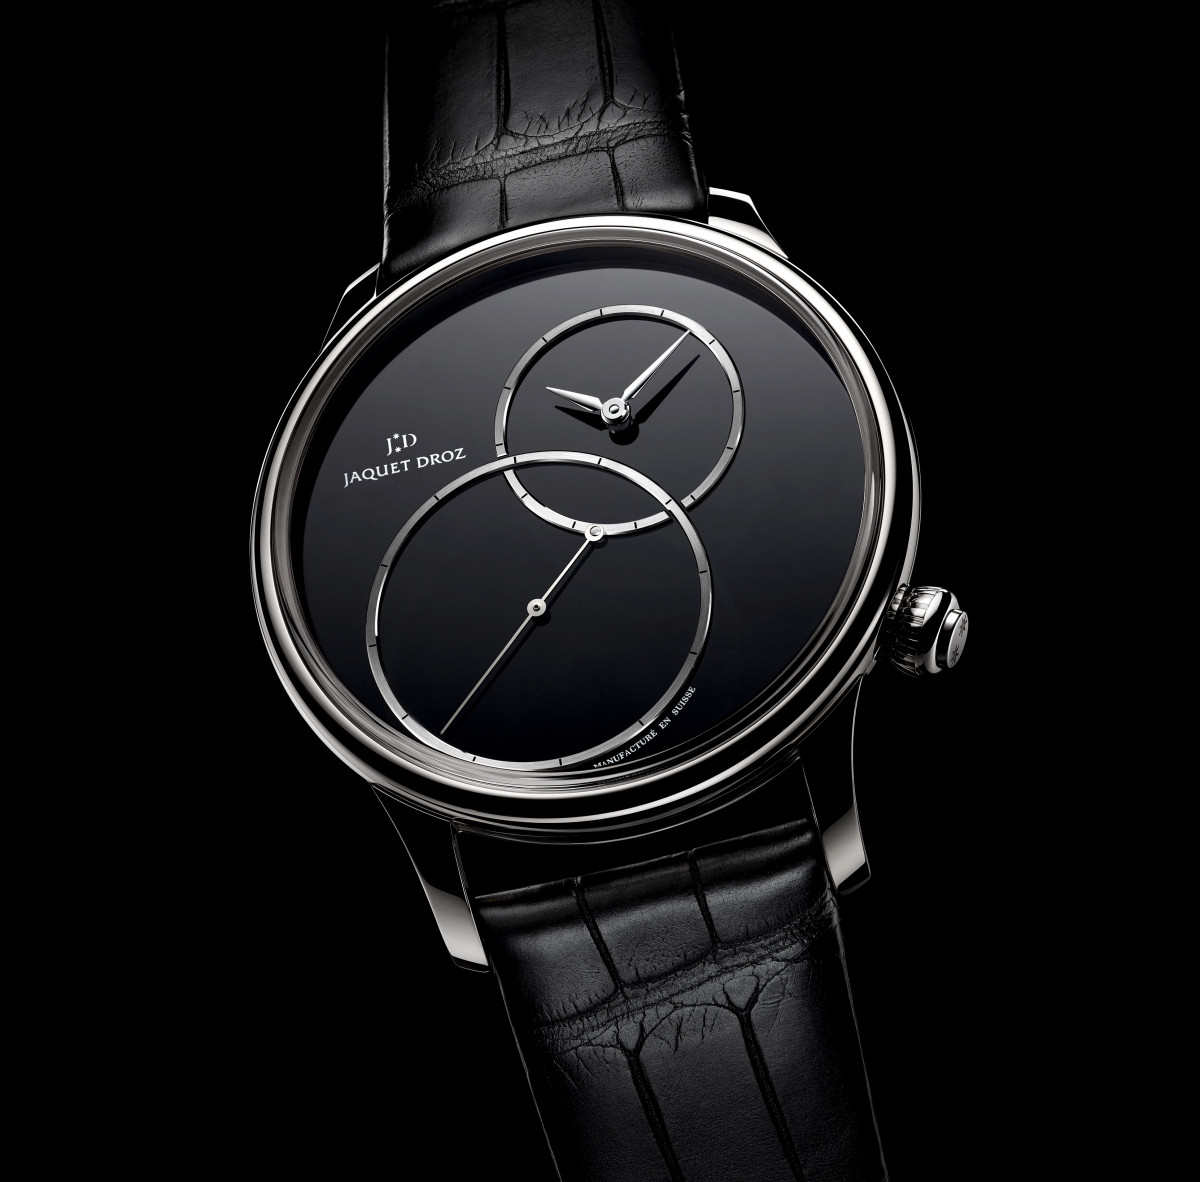 Photo: Jaquet Droz